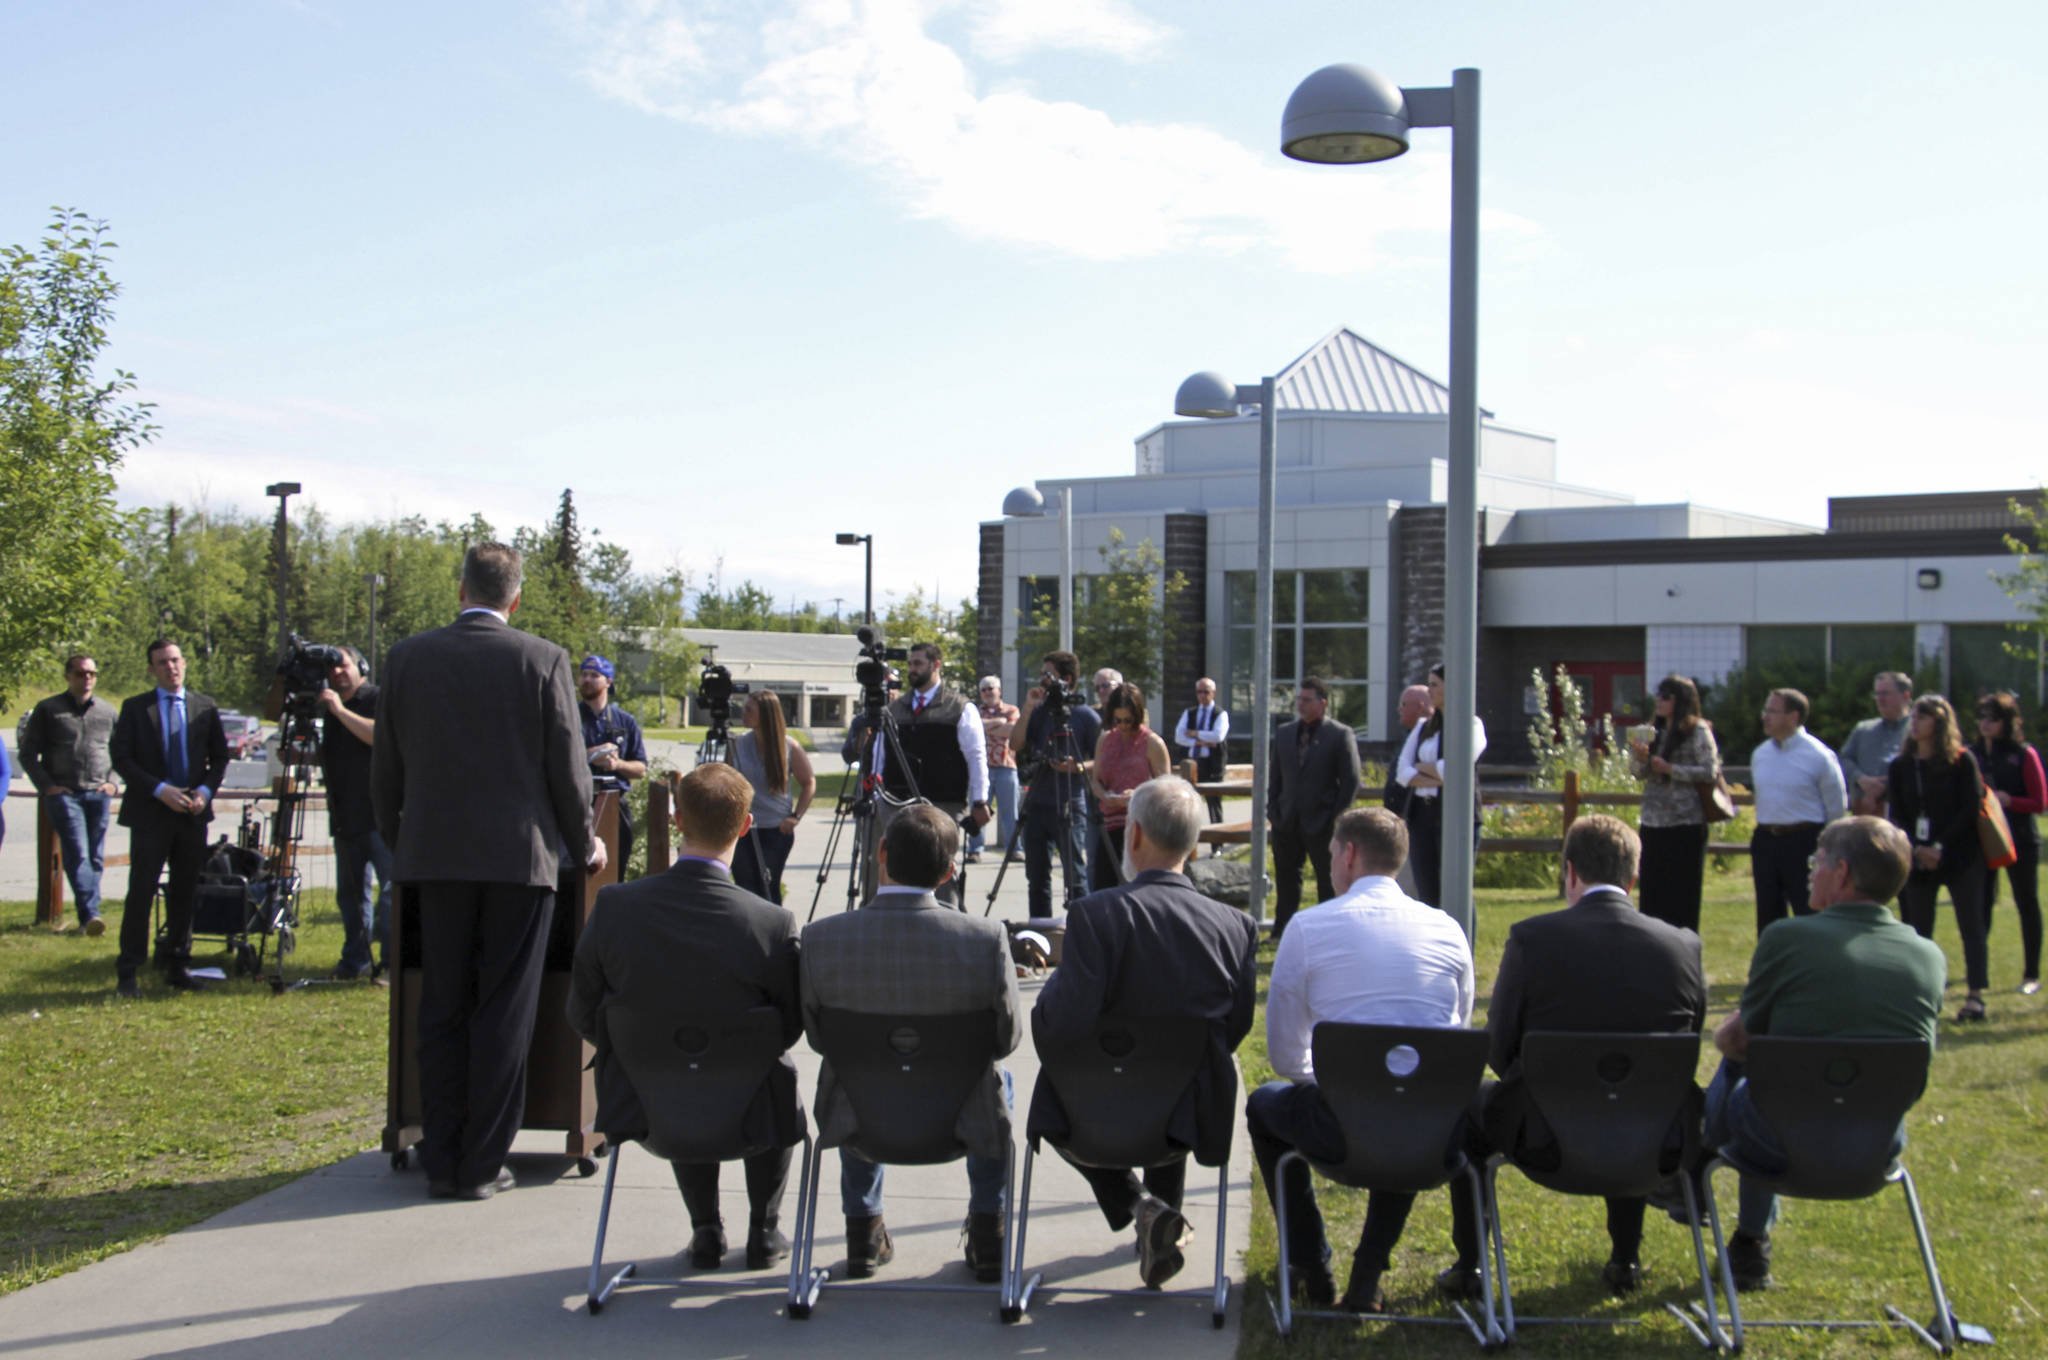 Alaska Gov. Mike Dunleavy, standing at podium, speaks at a news conference Friday, June 14, 2019, in Wasilla, Alaska. Dunleavy has called lawmakers into special session July 8 in Wasilla, and his administration gave a tour of the recommended site at Wasilla Middle School to reporters. (AP Photo/Mark Thiessen)